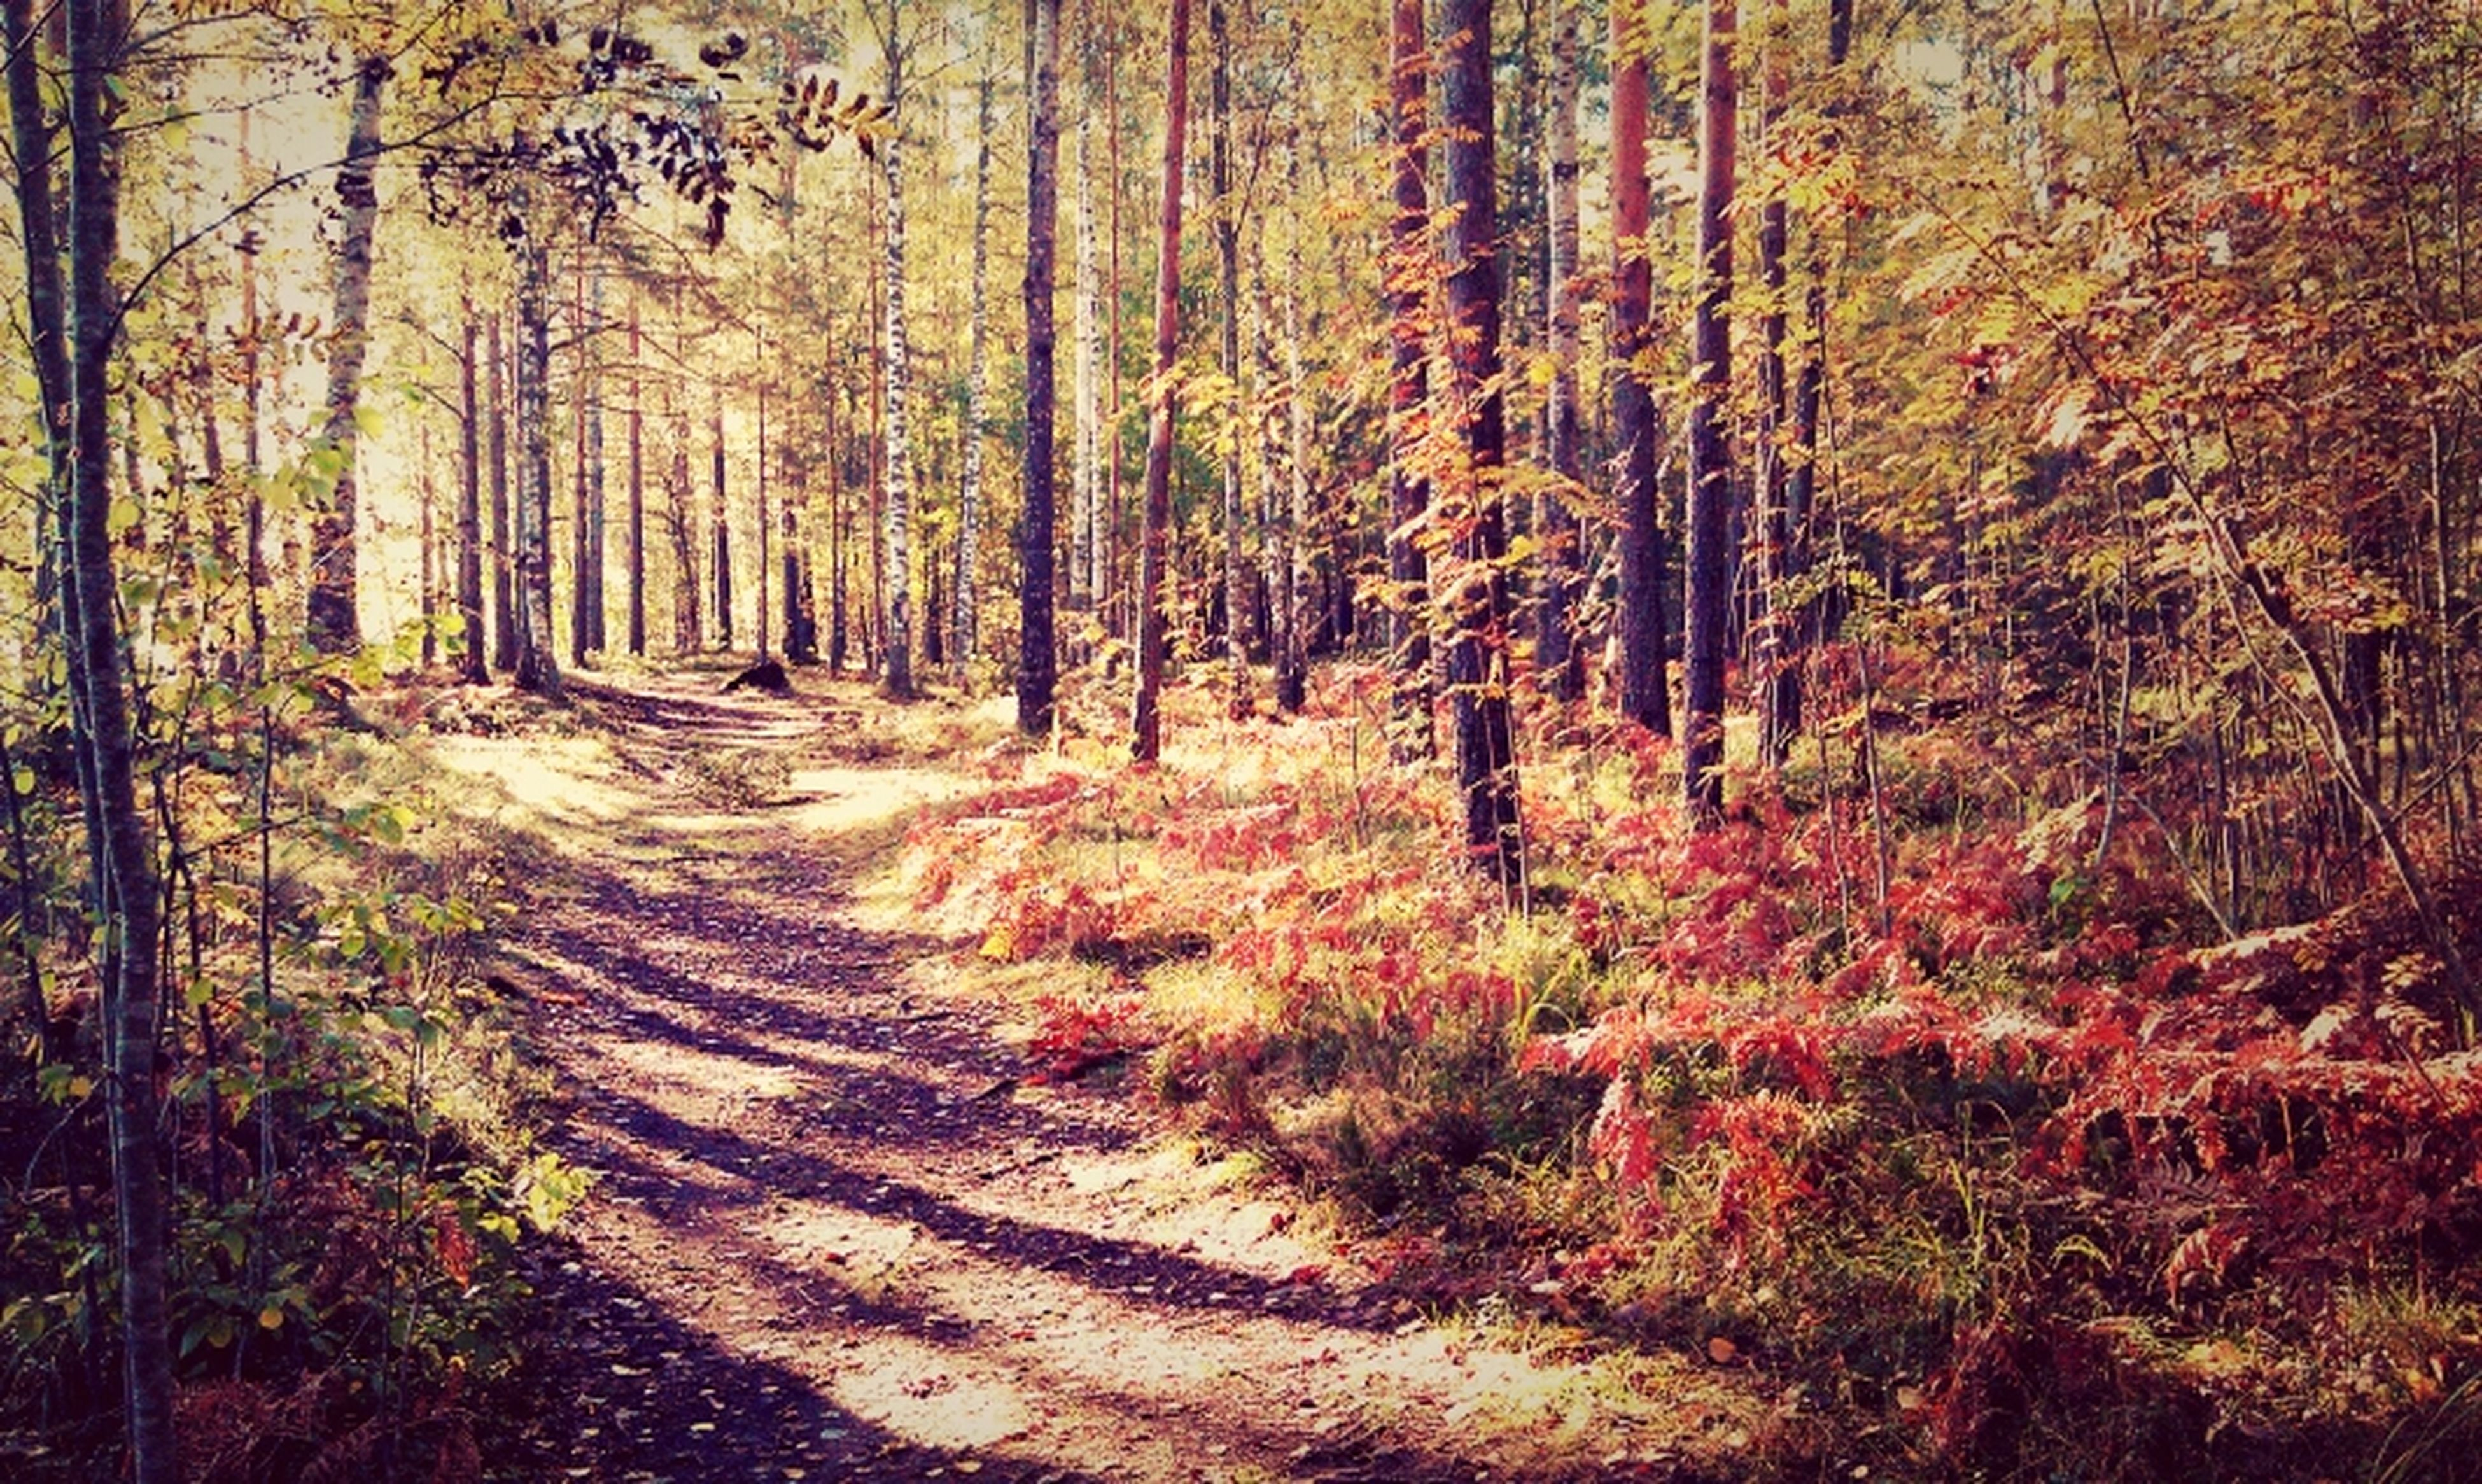 tree, forest, tranquility, tree trunk, tranquil scene, woodland, growth, nature, dirt road, the way forward, beauty in nature, scenics, landscape, non-urban scene, footpath, plant, grass, sunlight, outdoors, day